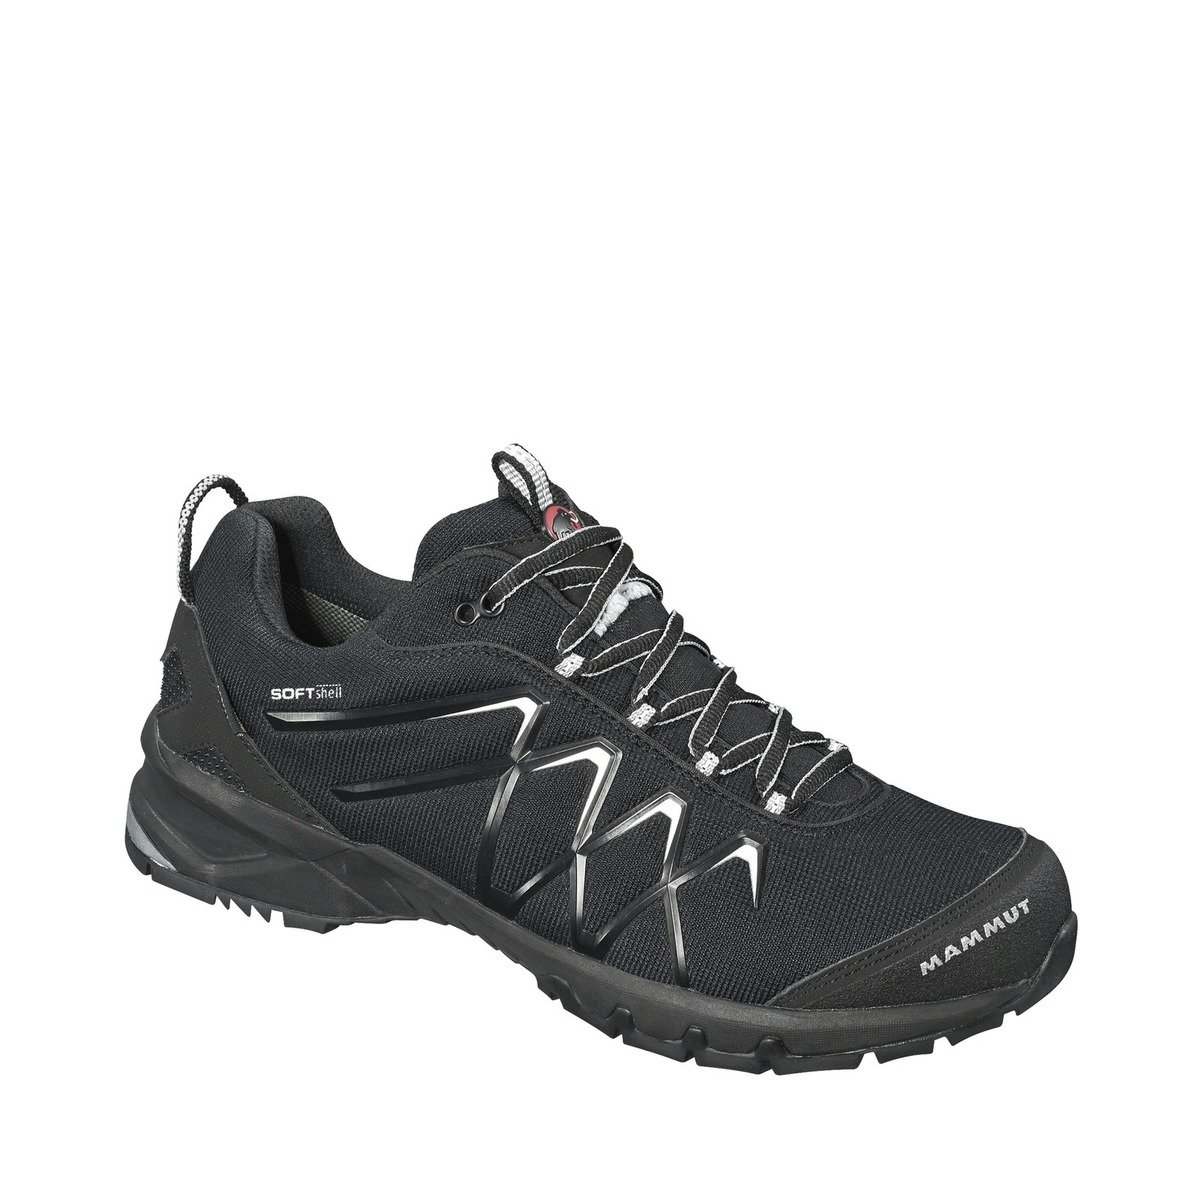 Mammut Ultimate low GTX Men - Trekobchod 9cf81bb0a6e